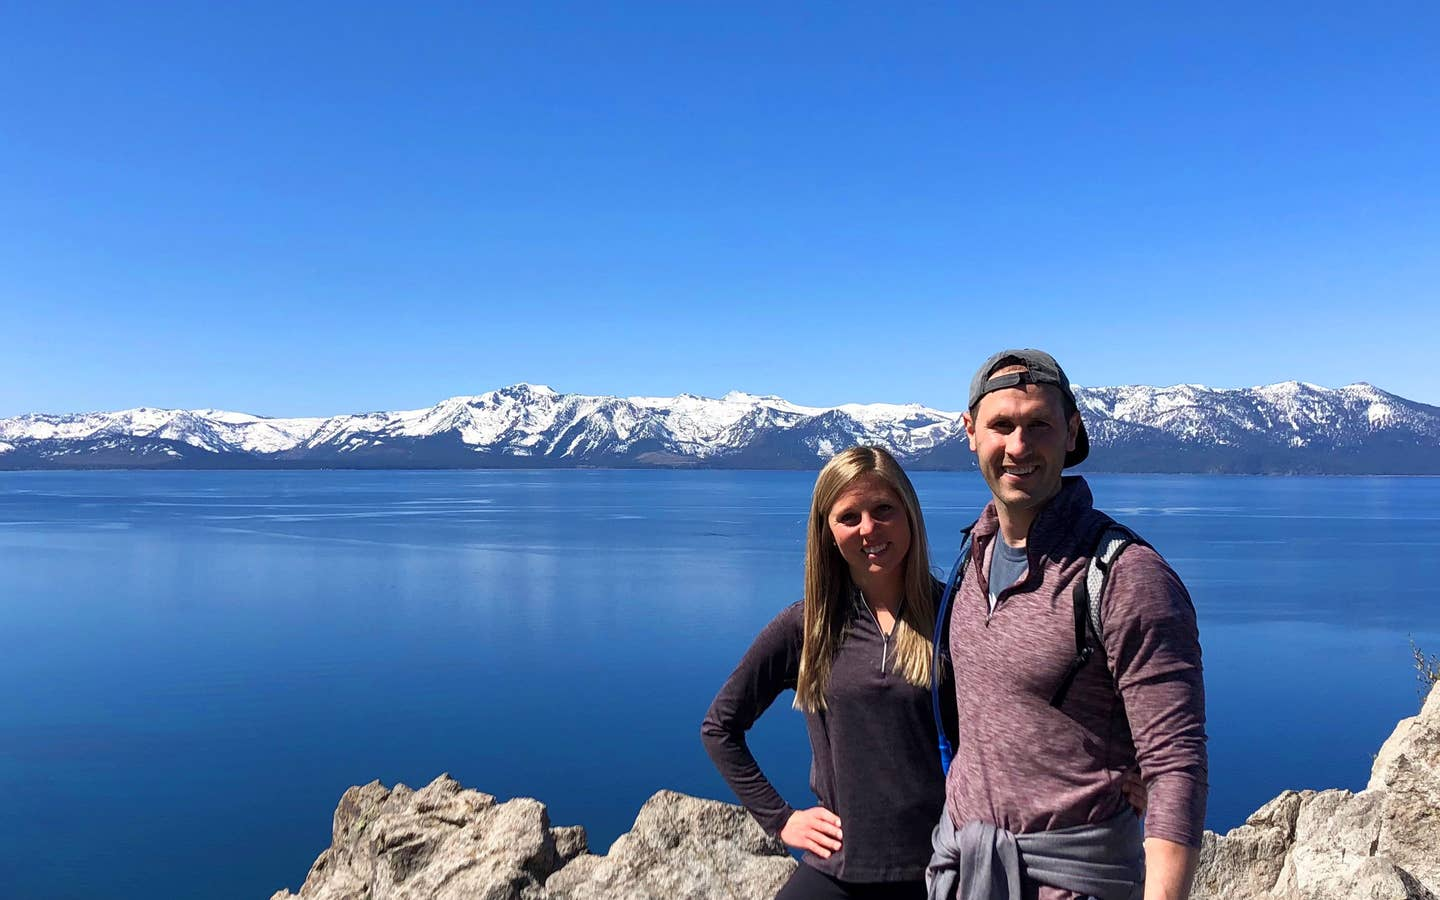 A woman (left) black pullover while hugging a man (right) wearing a red pullover and grey hat in front of a mountain range at Lake Tahoe, Nevada.